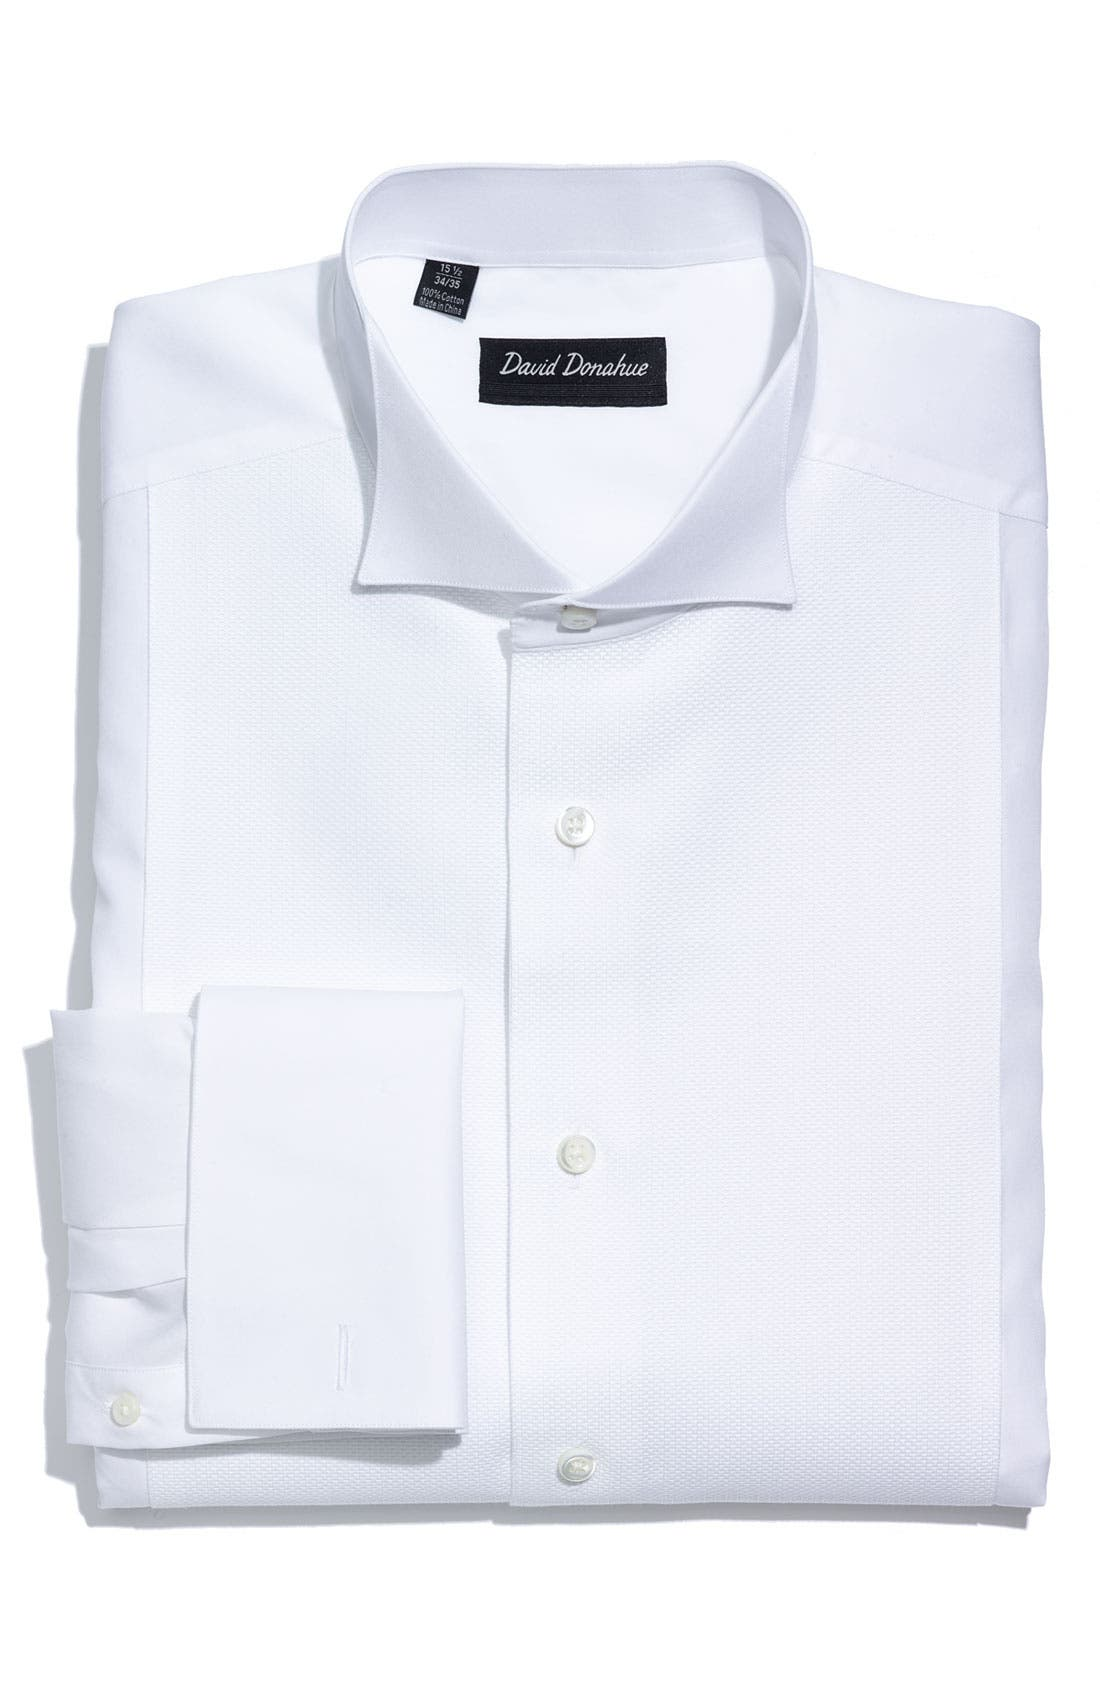 Alternate Image 1 Selected - David Donahue Regular Fit Bib Front French Cuff Tuxedo Shirt